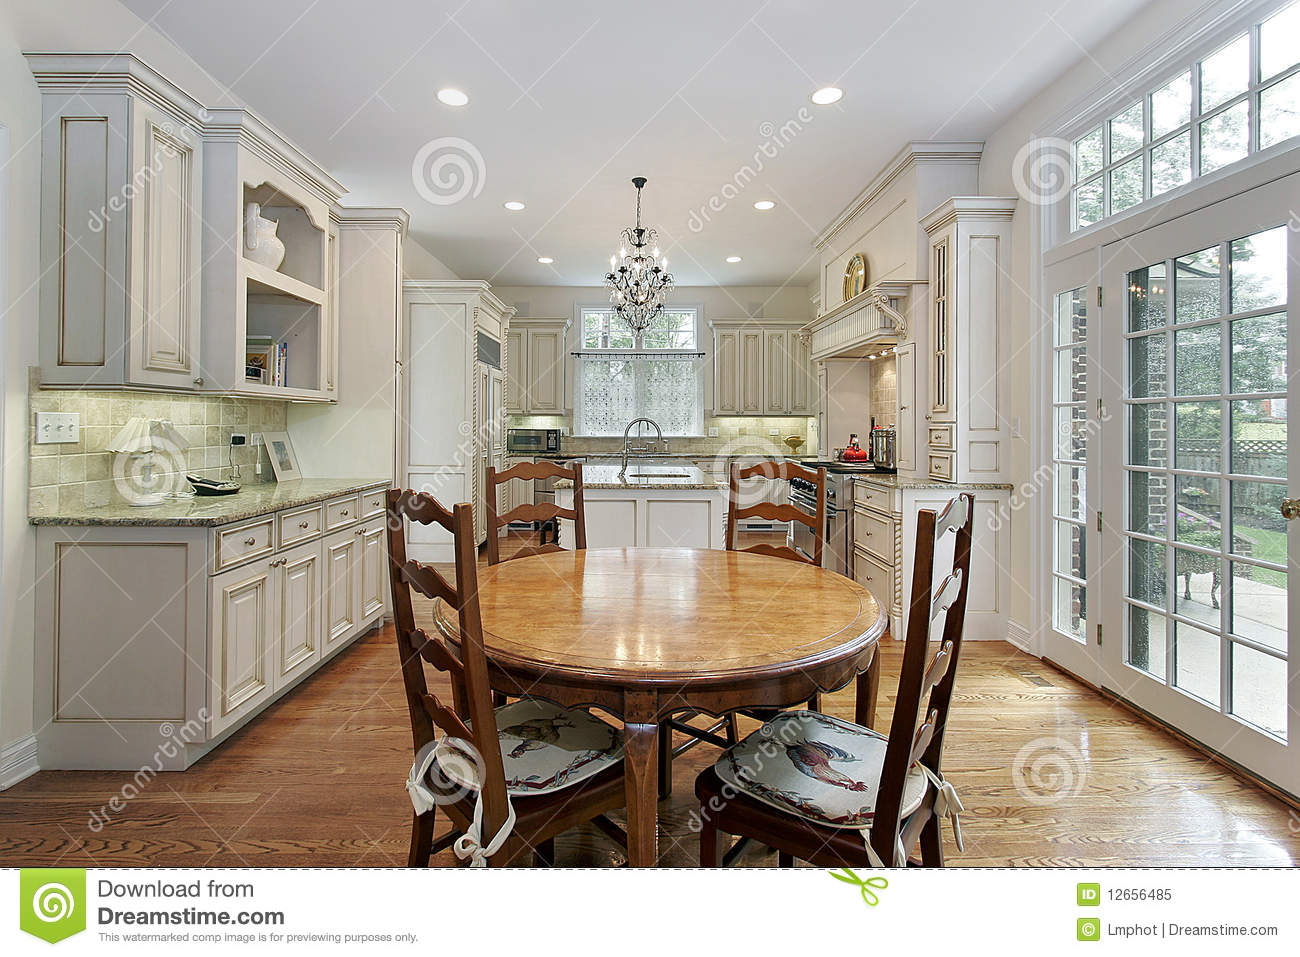 Kitchen With Island And Eating Area Royalty Free Stock